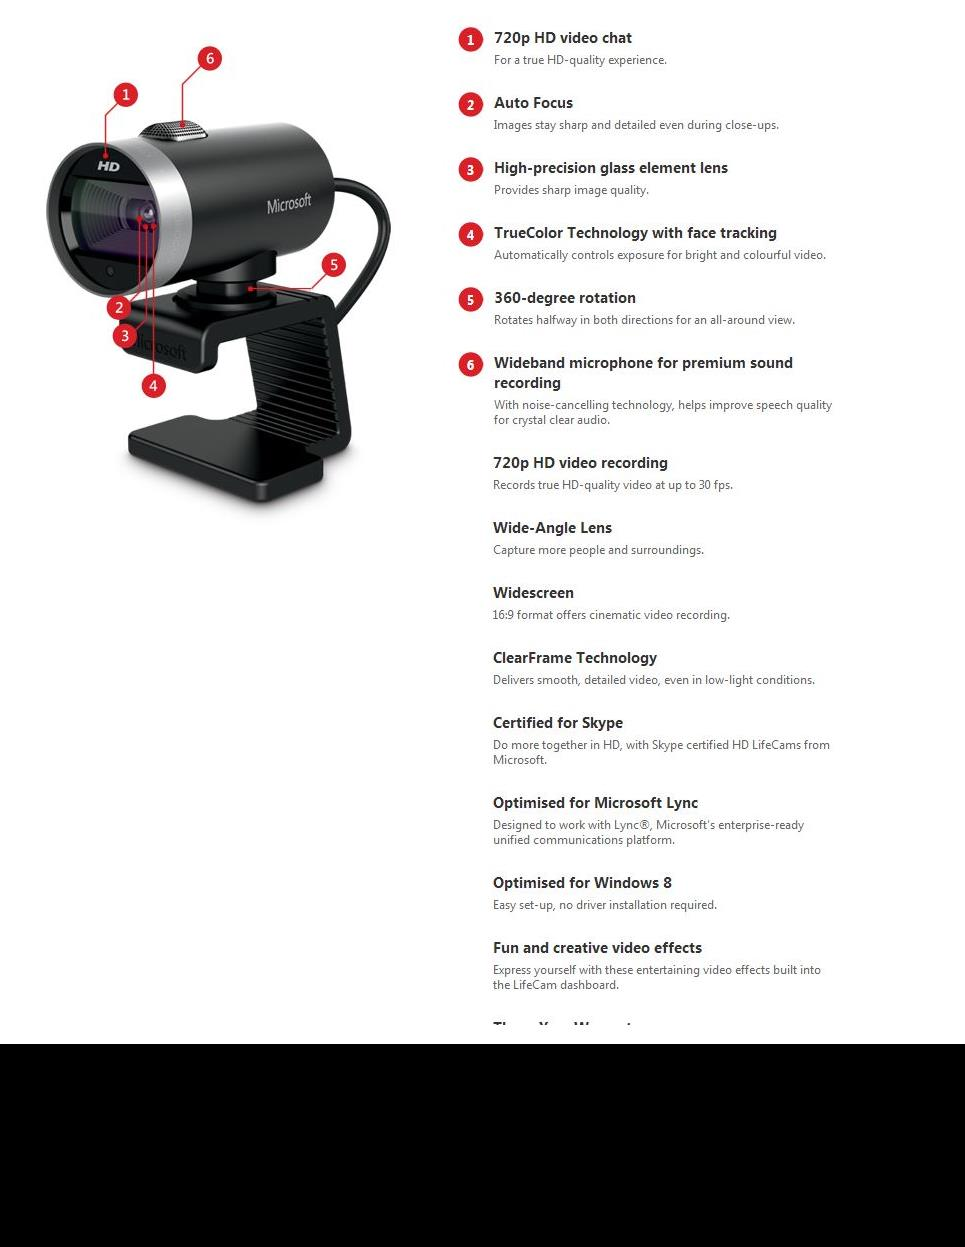 A large marketing image providing additional information about the product Microsoft LifeCam Cinema HD Webcam - Additional alt info not provided